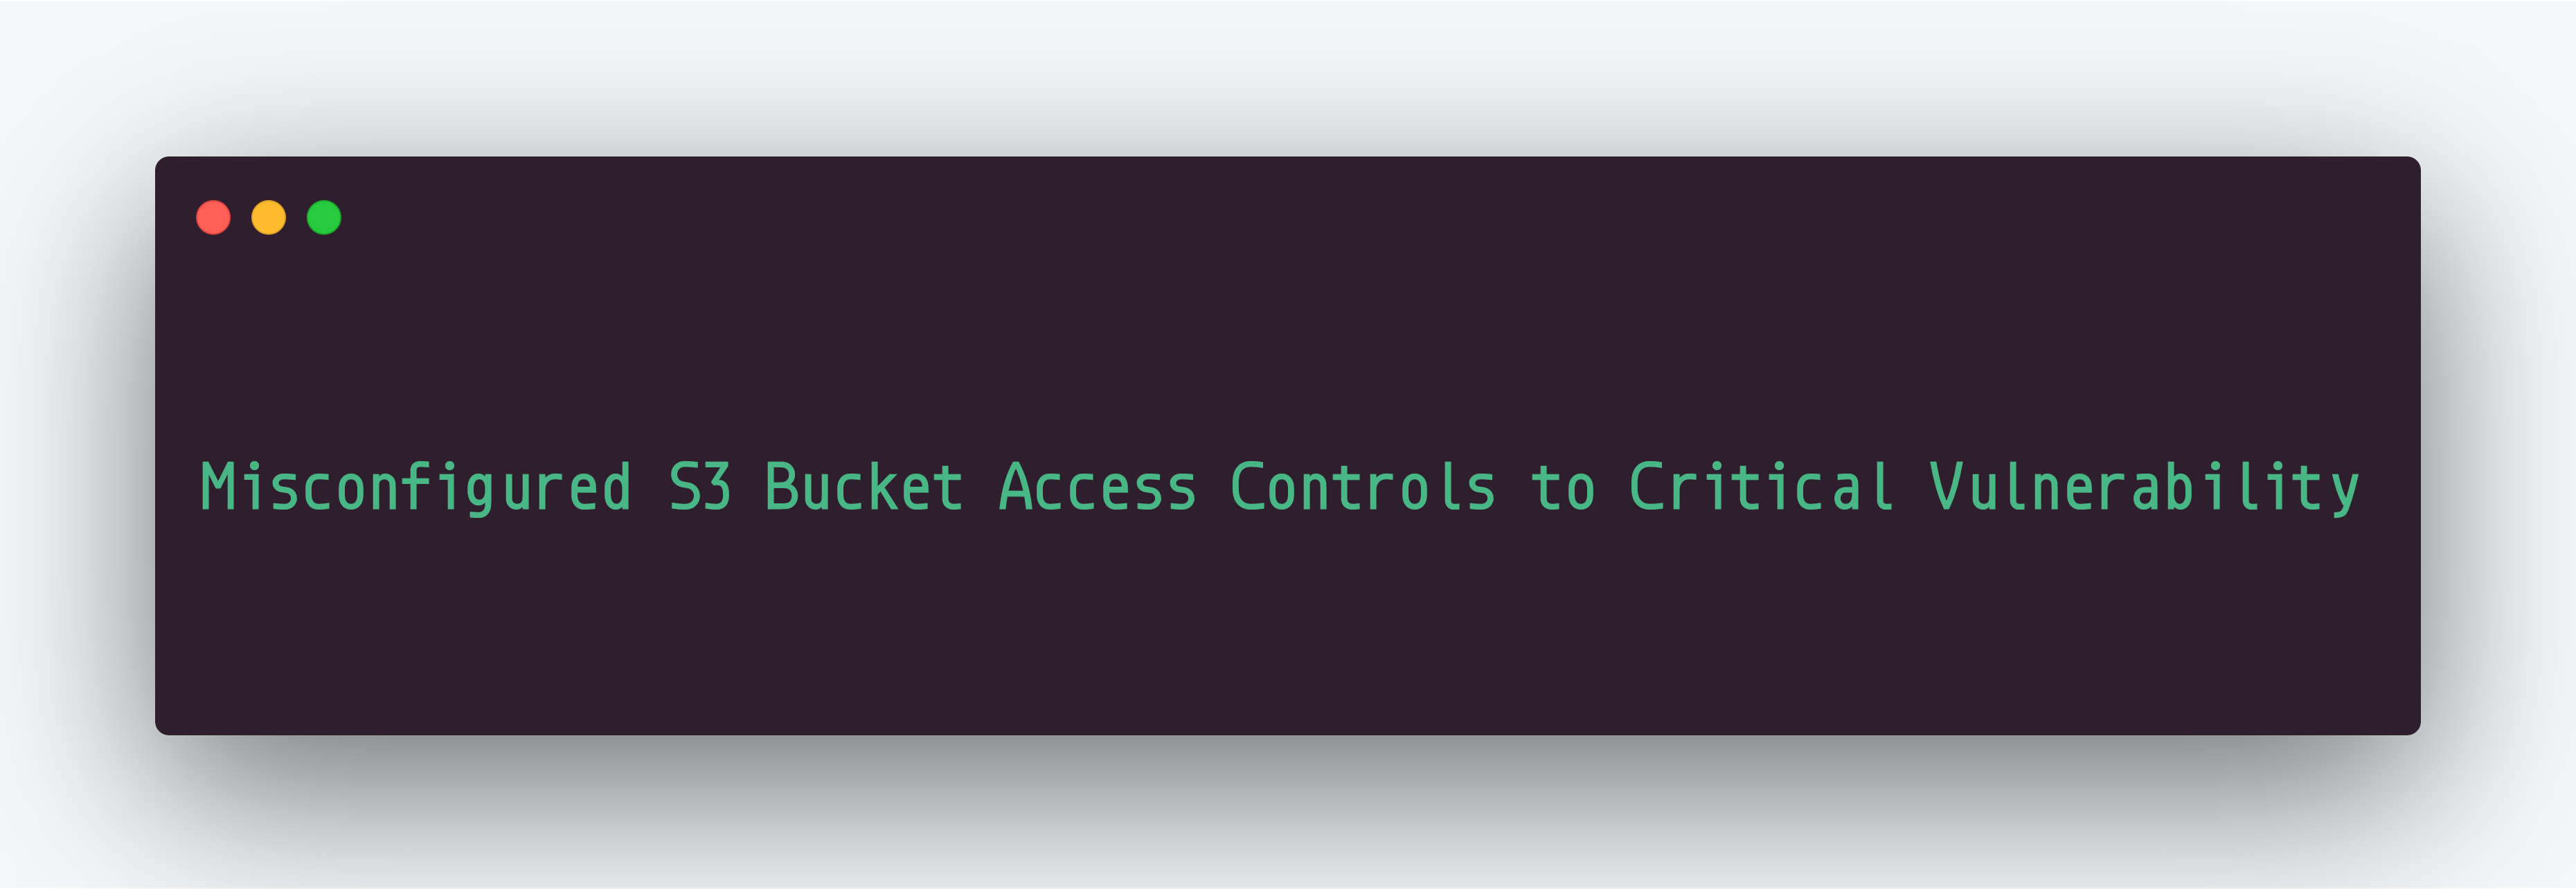 Misconfigured S3 Bucket Access Controls to Critical Vulnerability